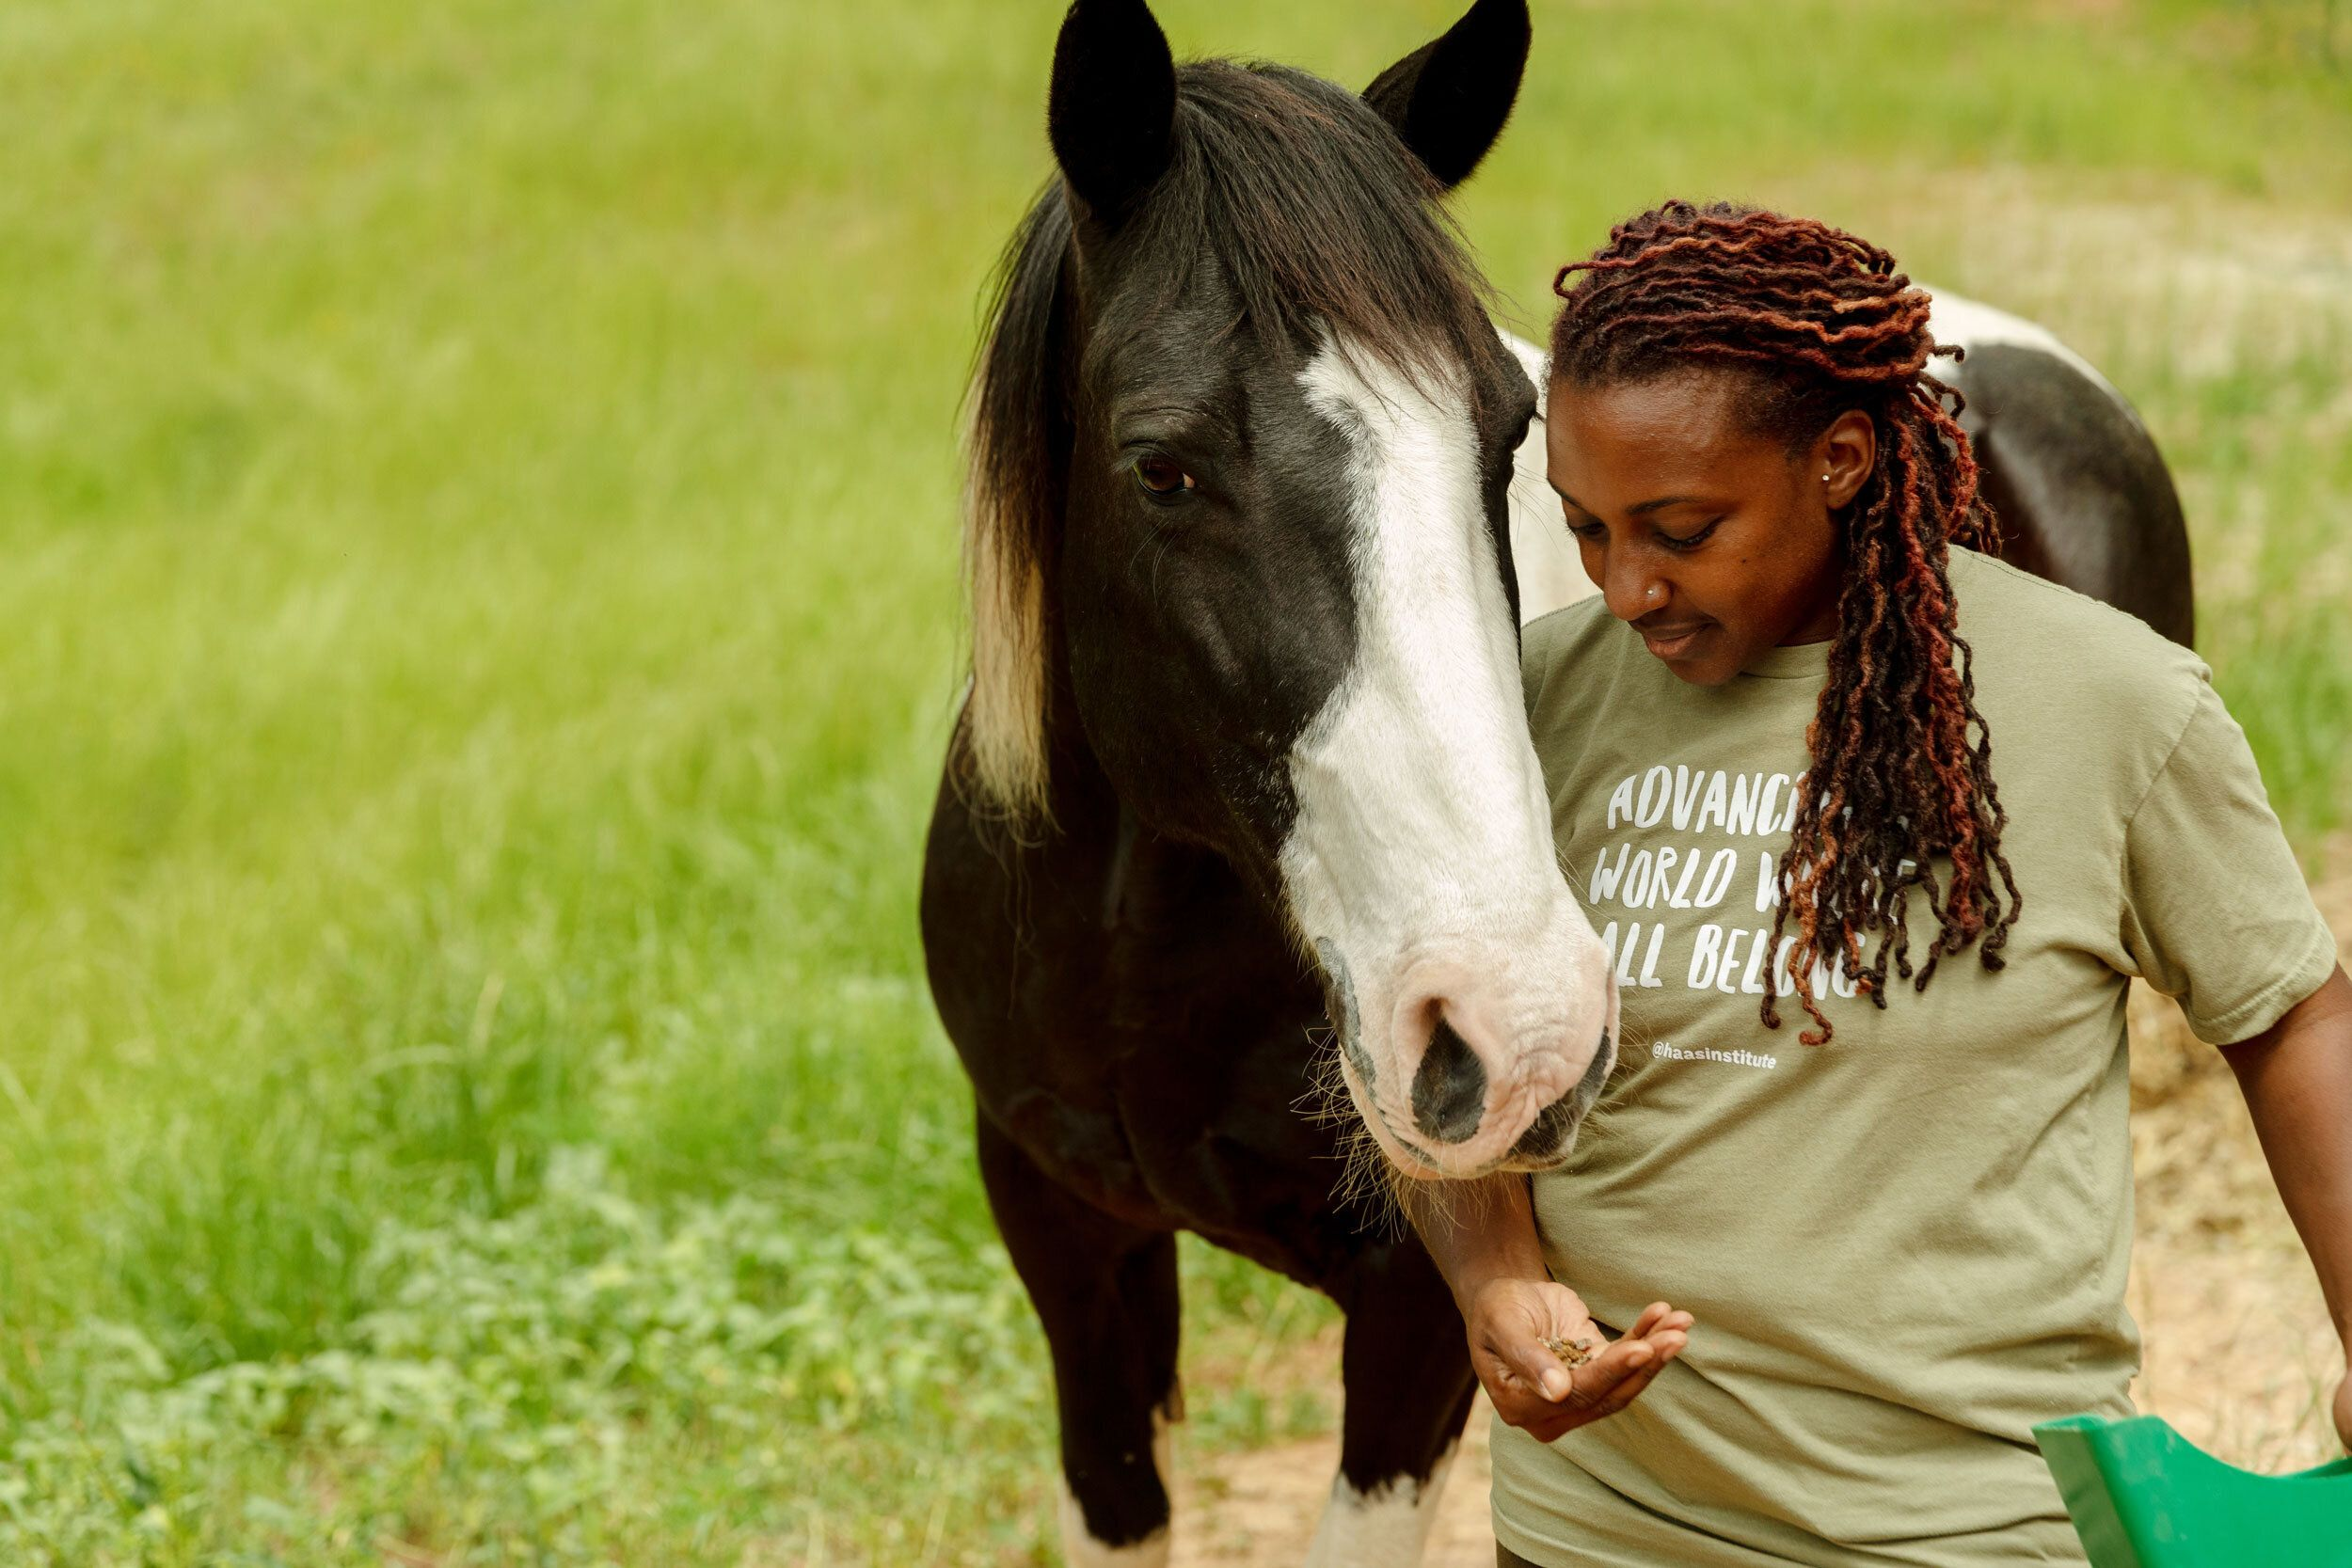 Keisha feeds her horse, Hercules, who helped inspire her to create the farm.